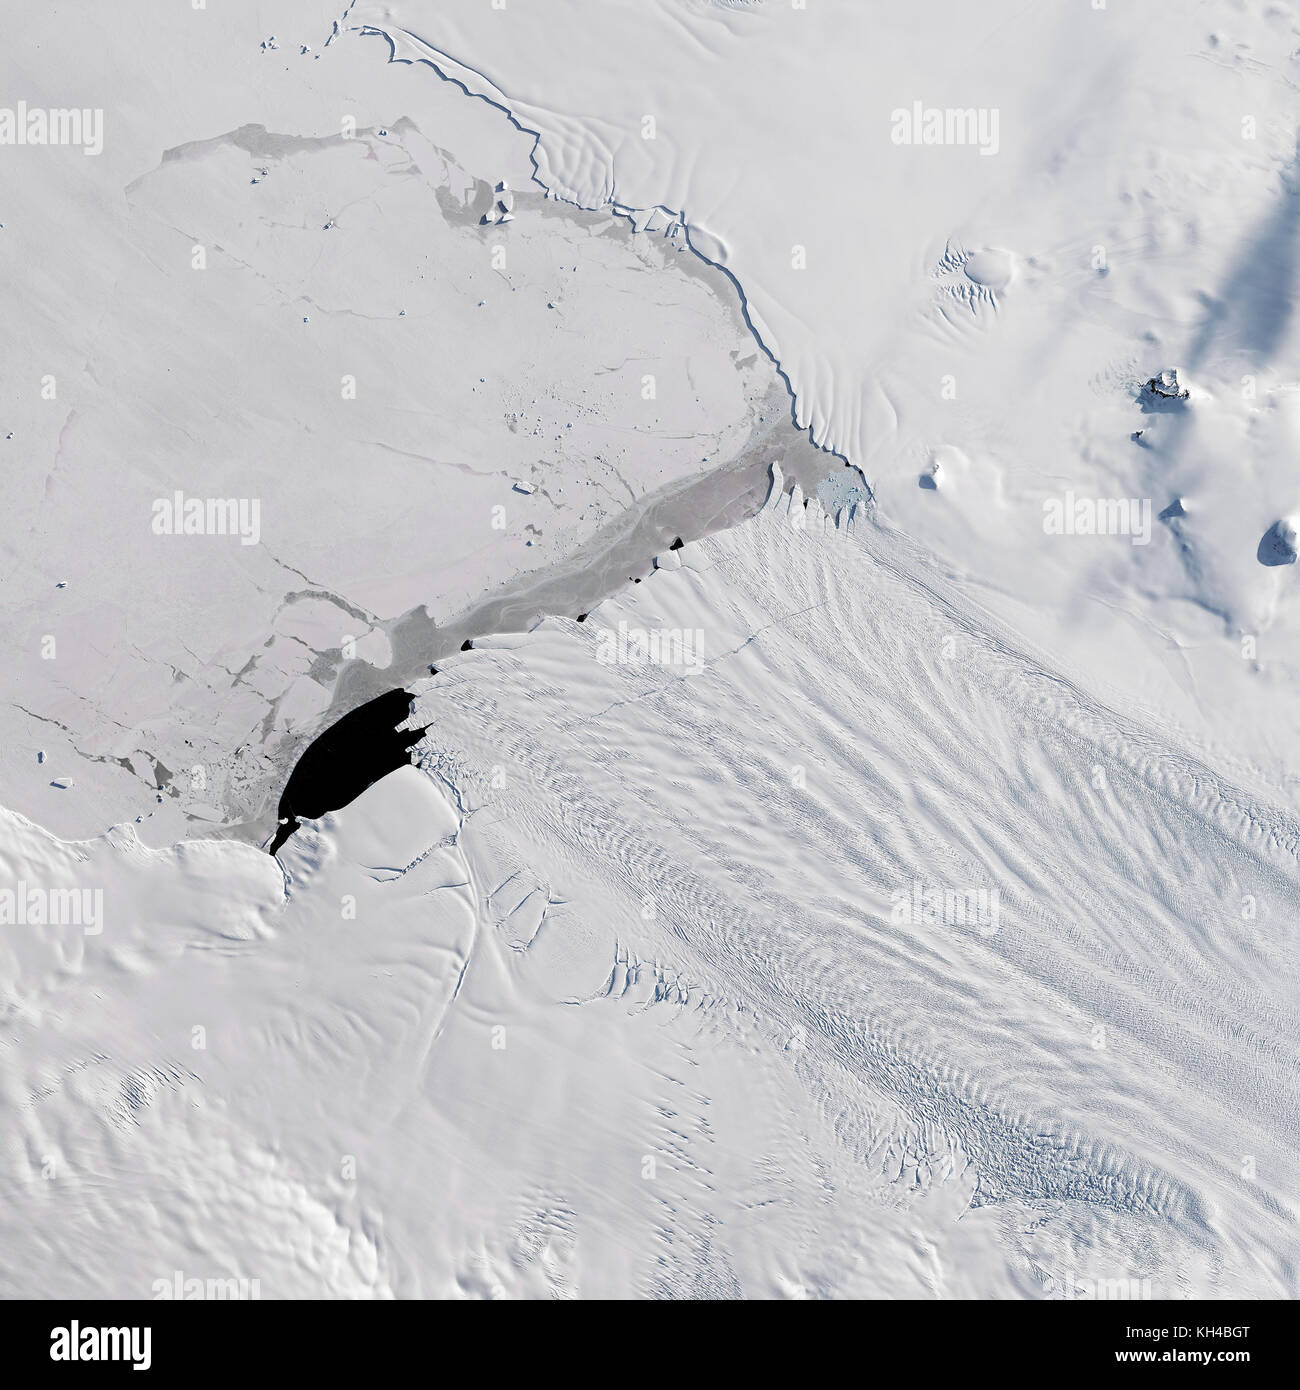 A new iceberg calved from Pine Island Glacier—one of the main outlets where ice from the interior of the West Antarctic - Stock Image